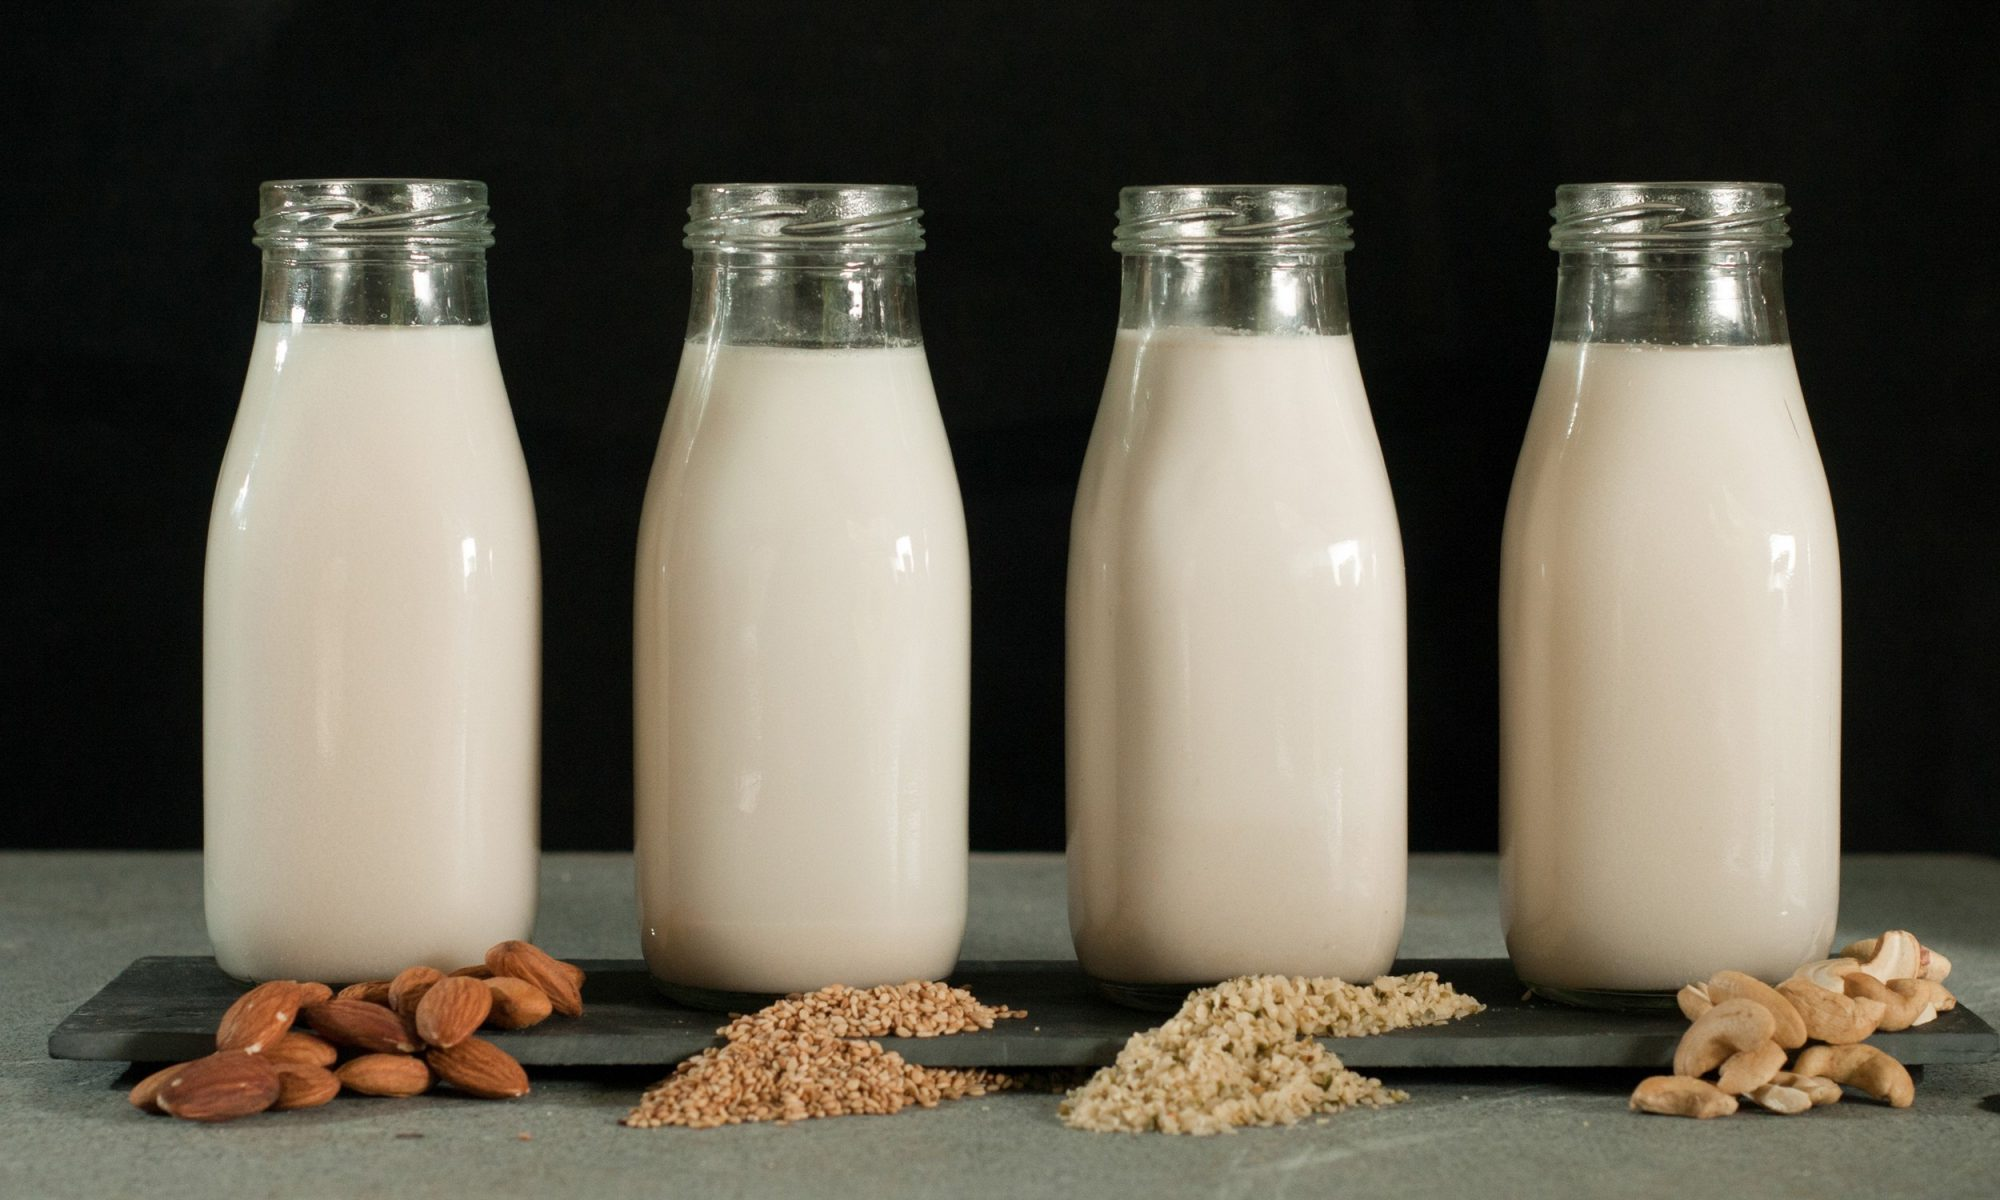 EC: EU Court Says Plant-Based Milks Can't Be Called 'Milk' Anymore